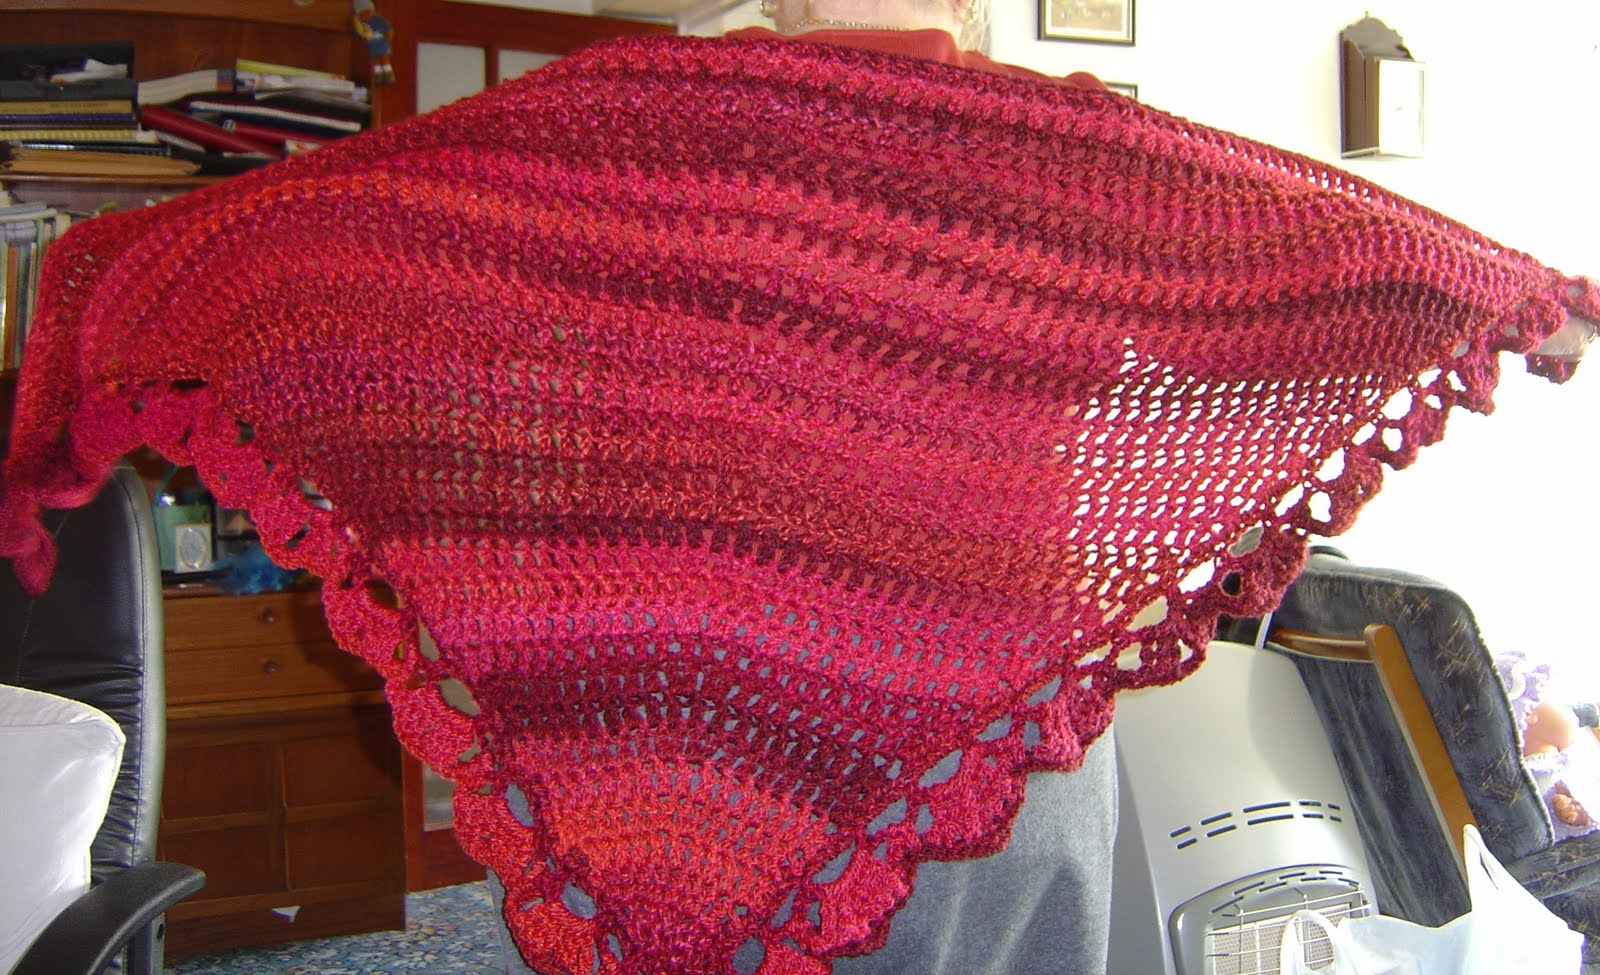 Enthusiastic crochetoholic: Easy Triangular Crochet Shawl